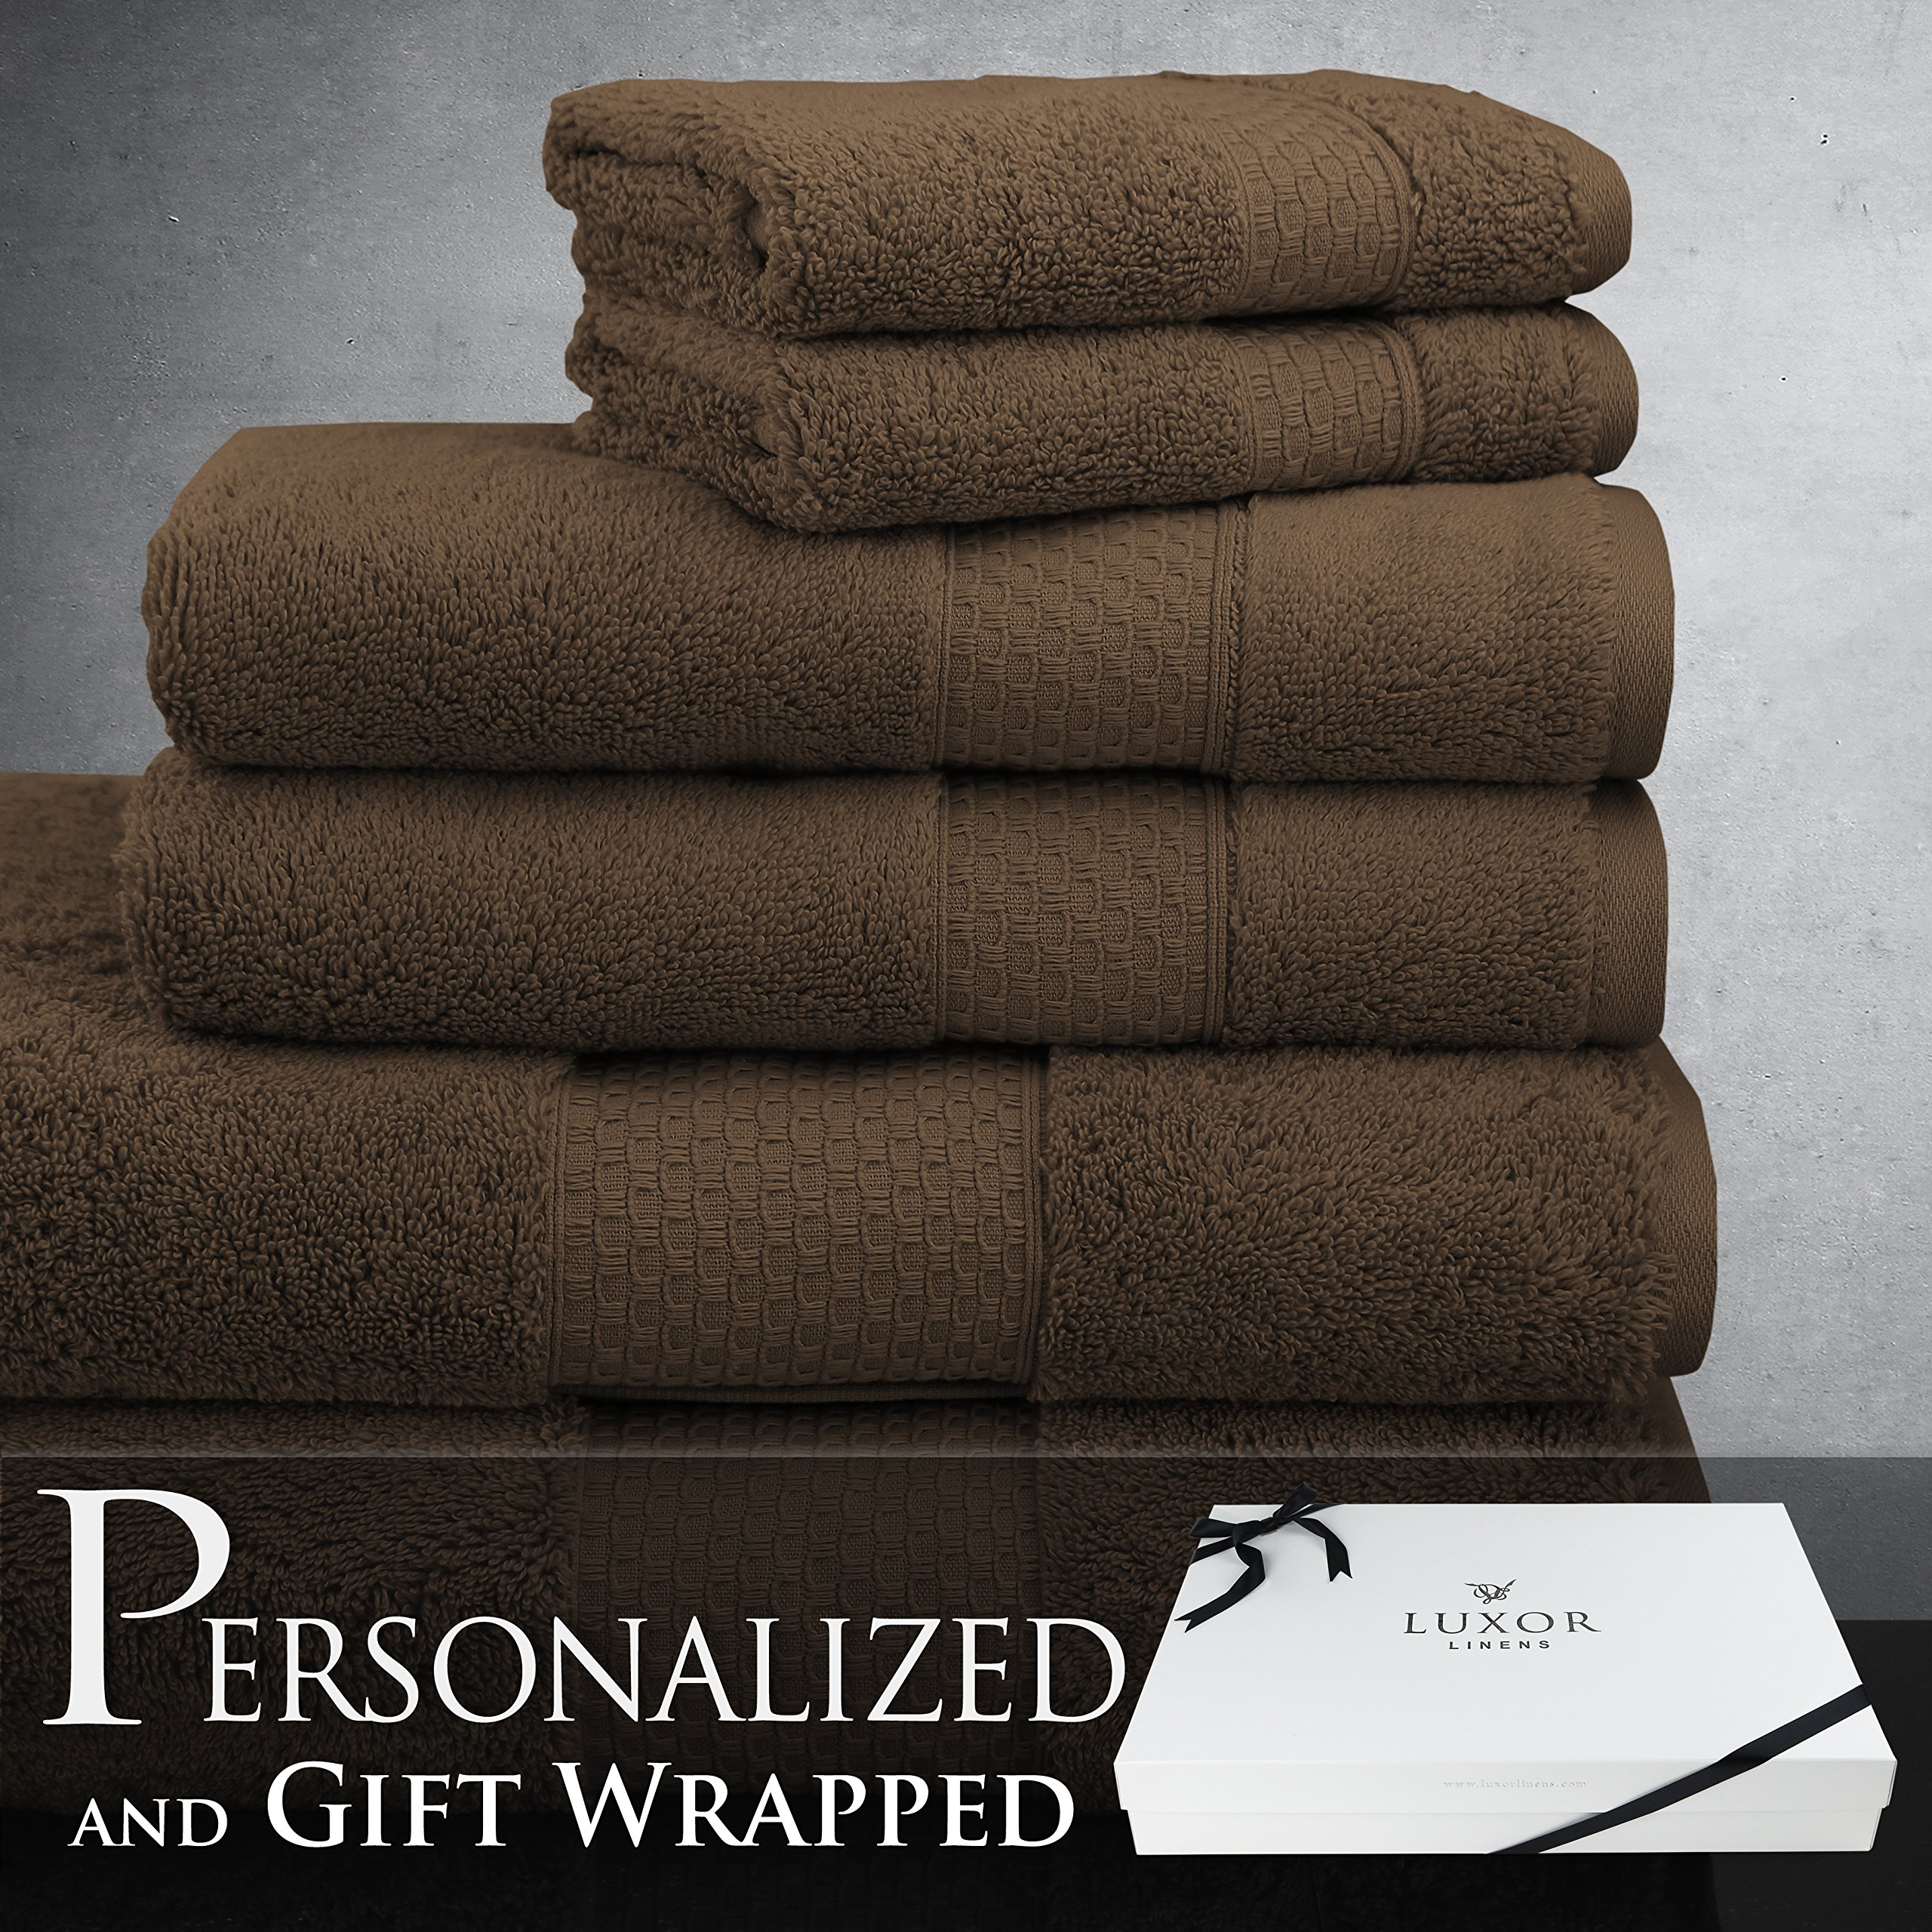 Luxor Linens New Arrival Mariabella Collection Luxury Turkish Cotton 6-Piece Towel Set - Chocolate - with Gift Packaging